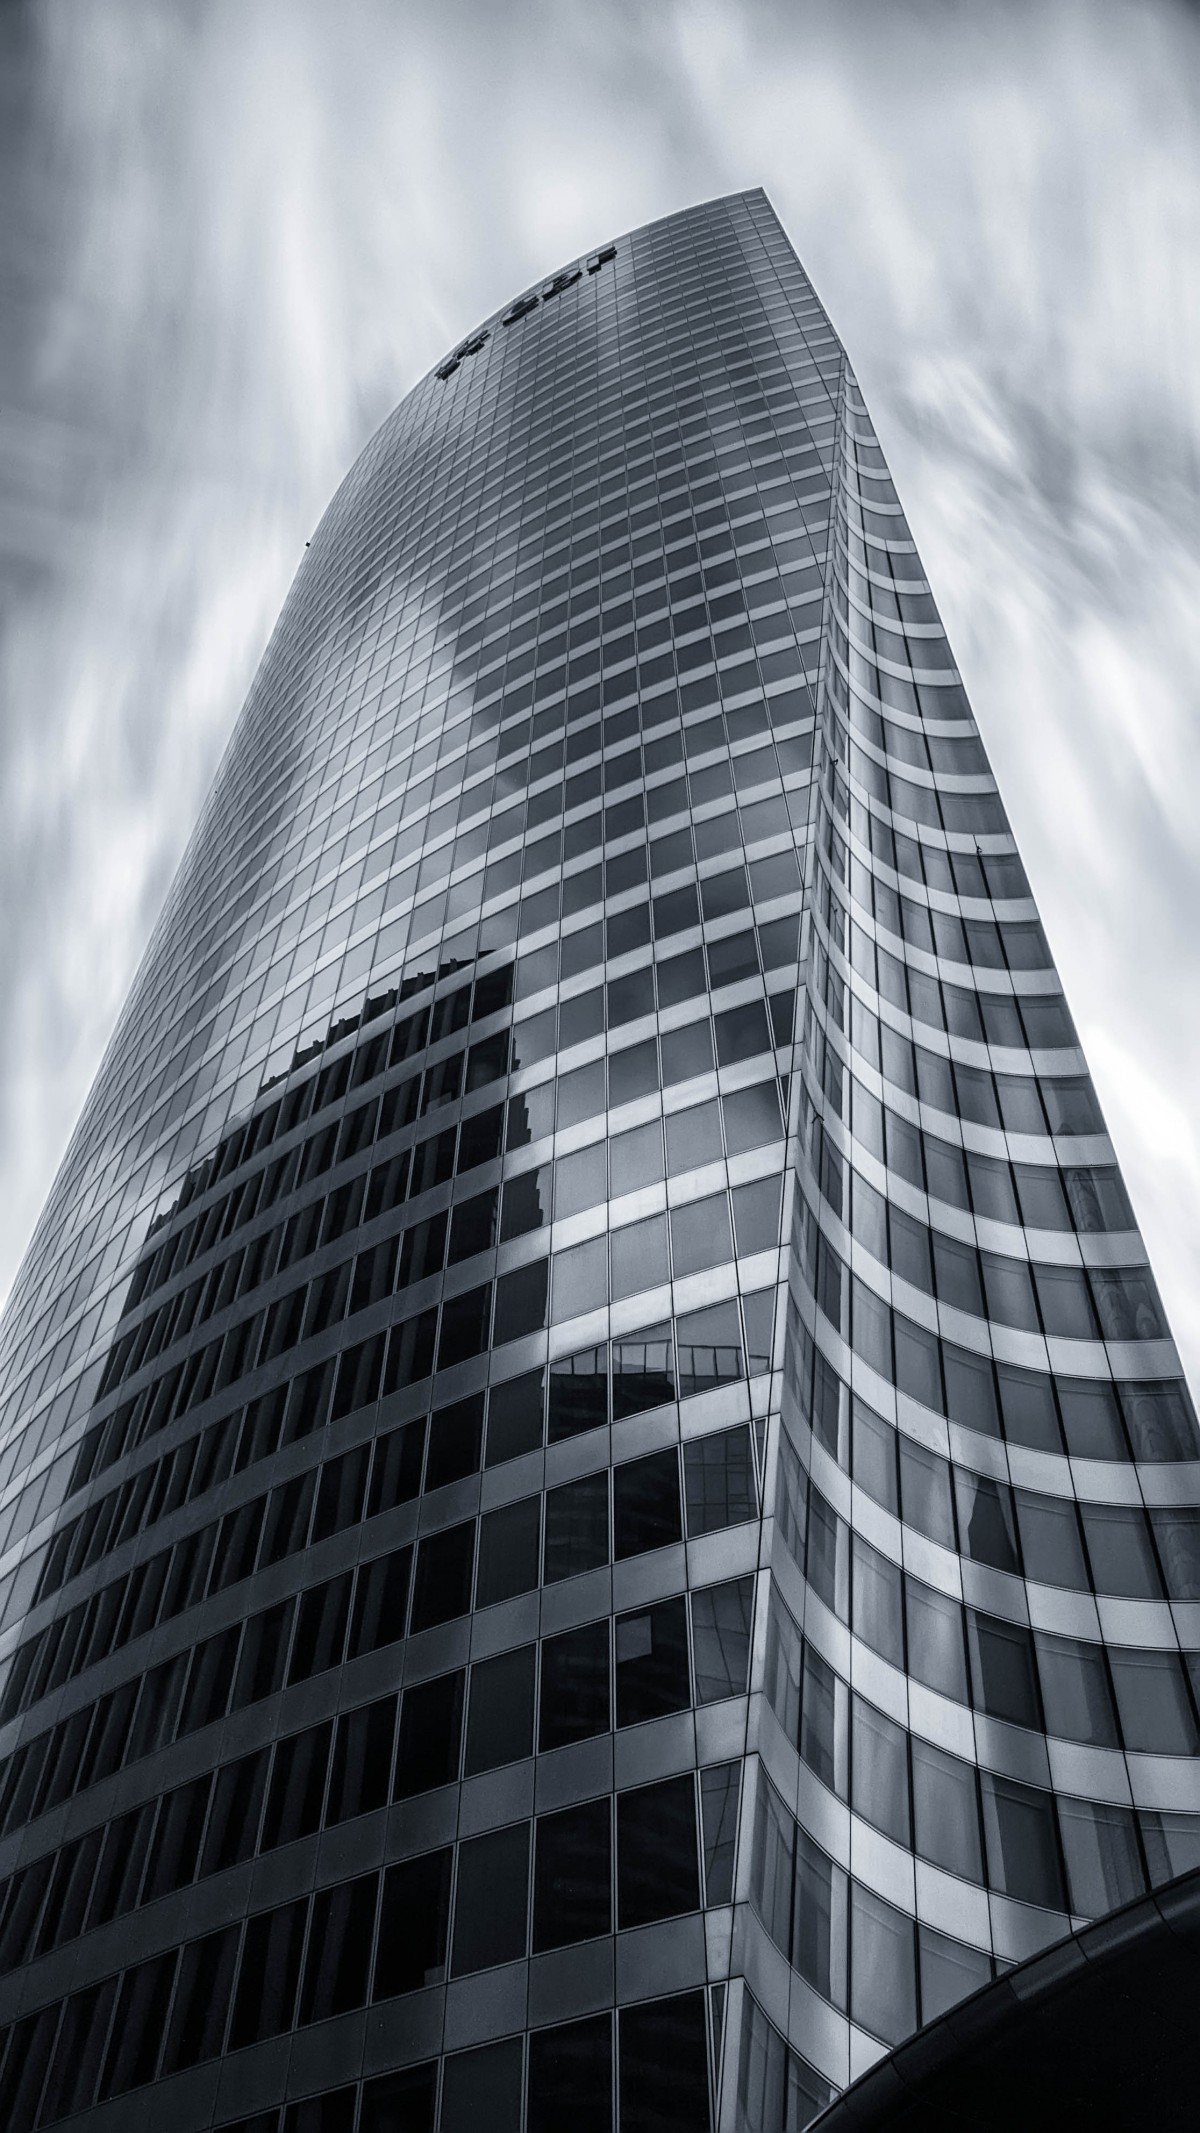 Free Images  black and white skyline building city